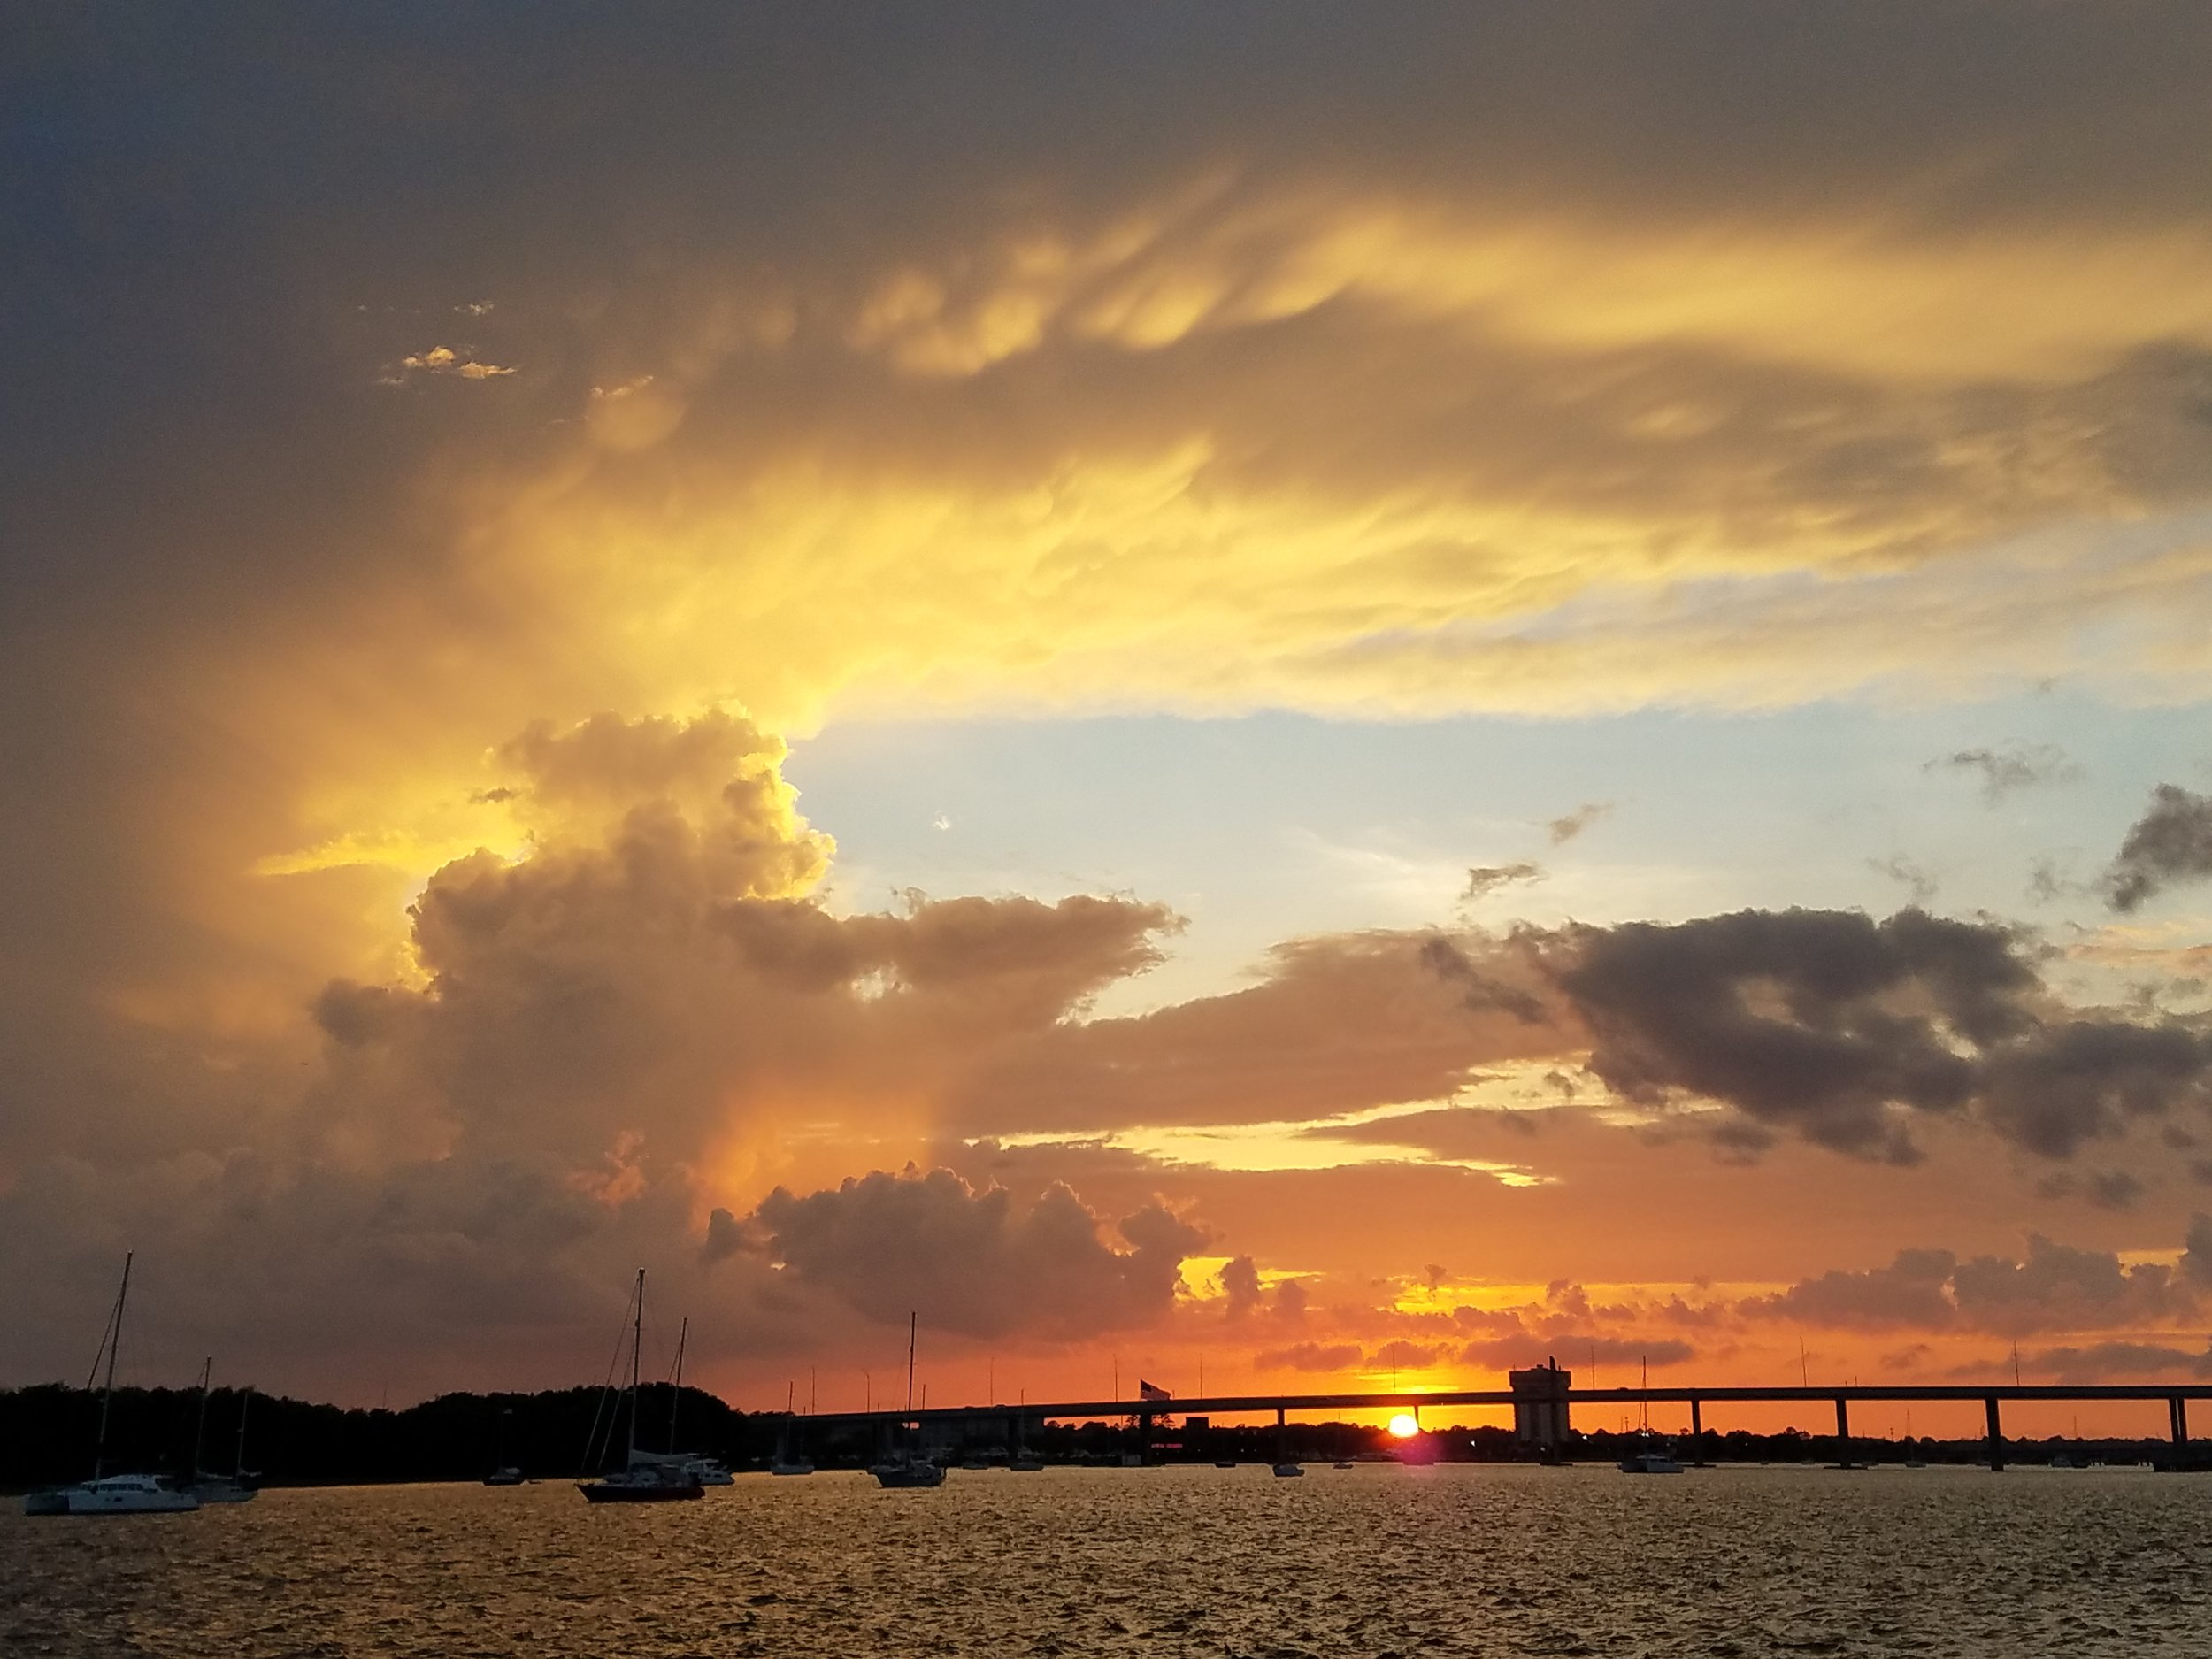 The sunset view from the Independence at the Charleston City Marina